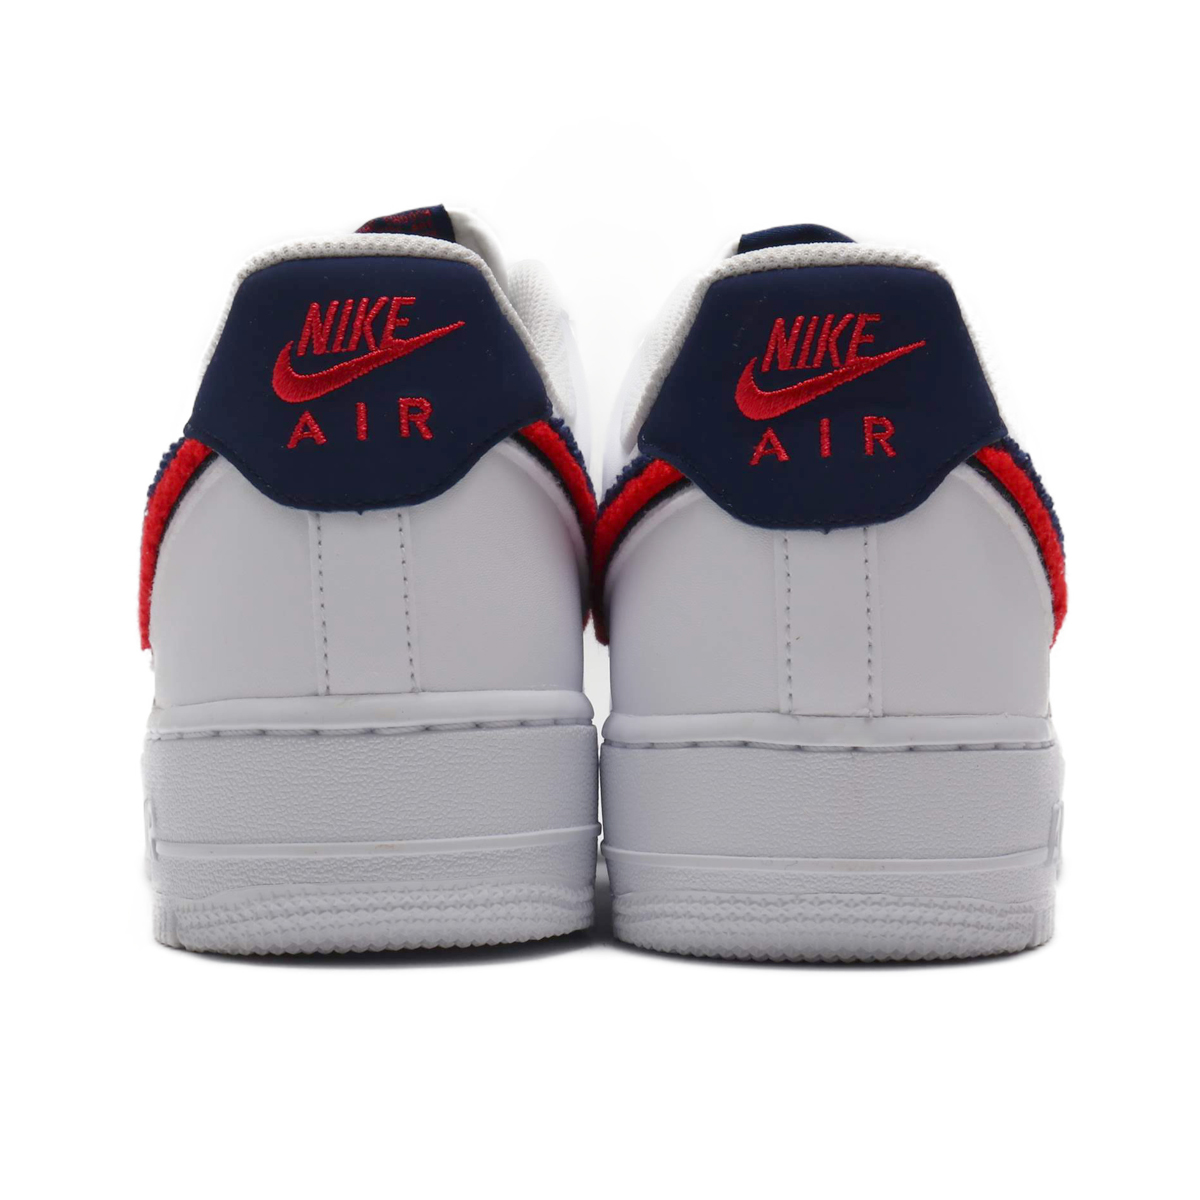 best website 2e3d2 c62a1 NIKE AIR FORCE 1  07 LV8 (Nike air force 1 07 LV8) WHITE UNIVERSITY RED-BLUE  VOID 18FA-I